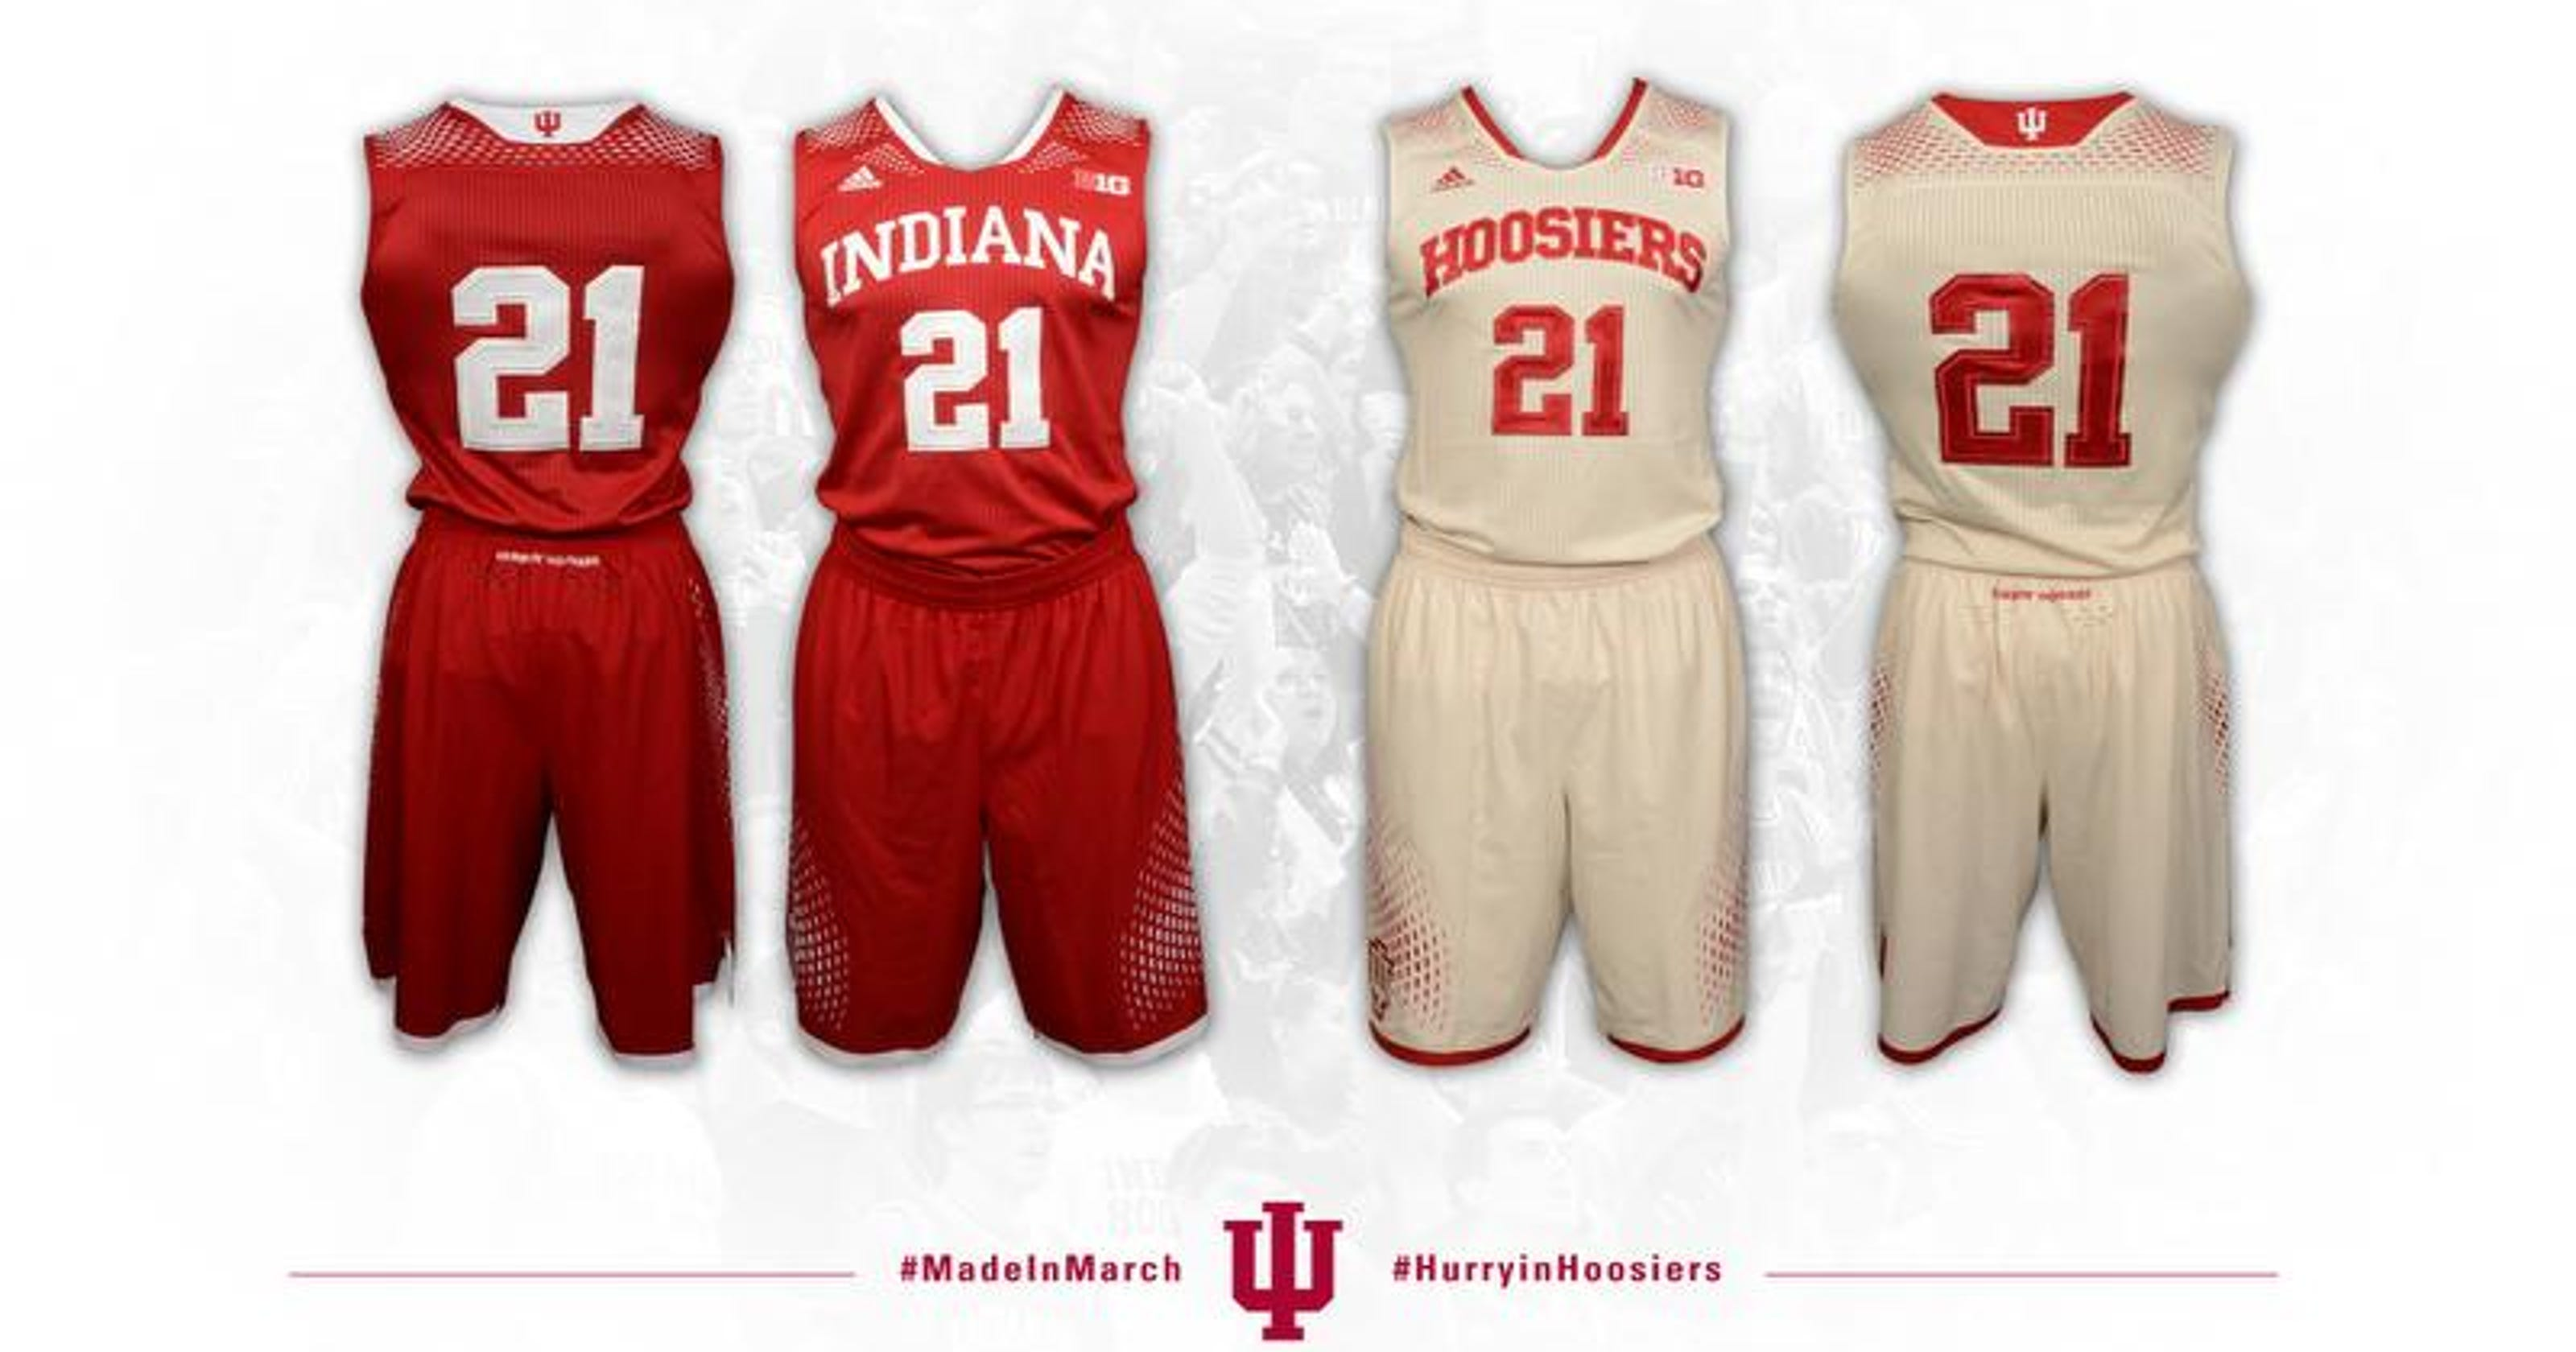 online retailer 760c2 590bf Indiana switching to new Adidas uniforms for Big Ten Tournam